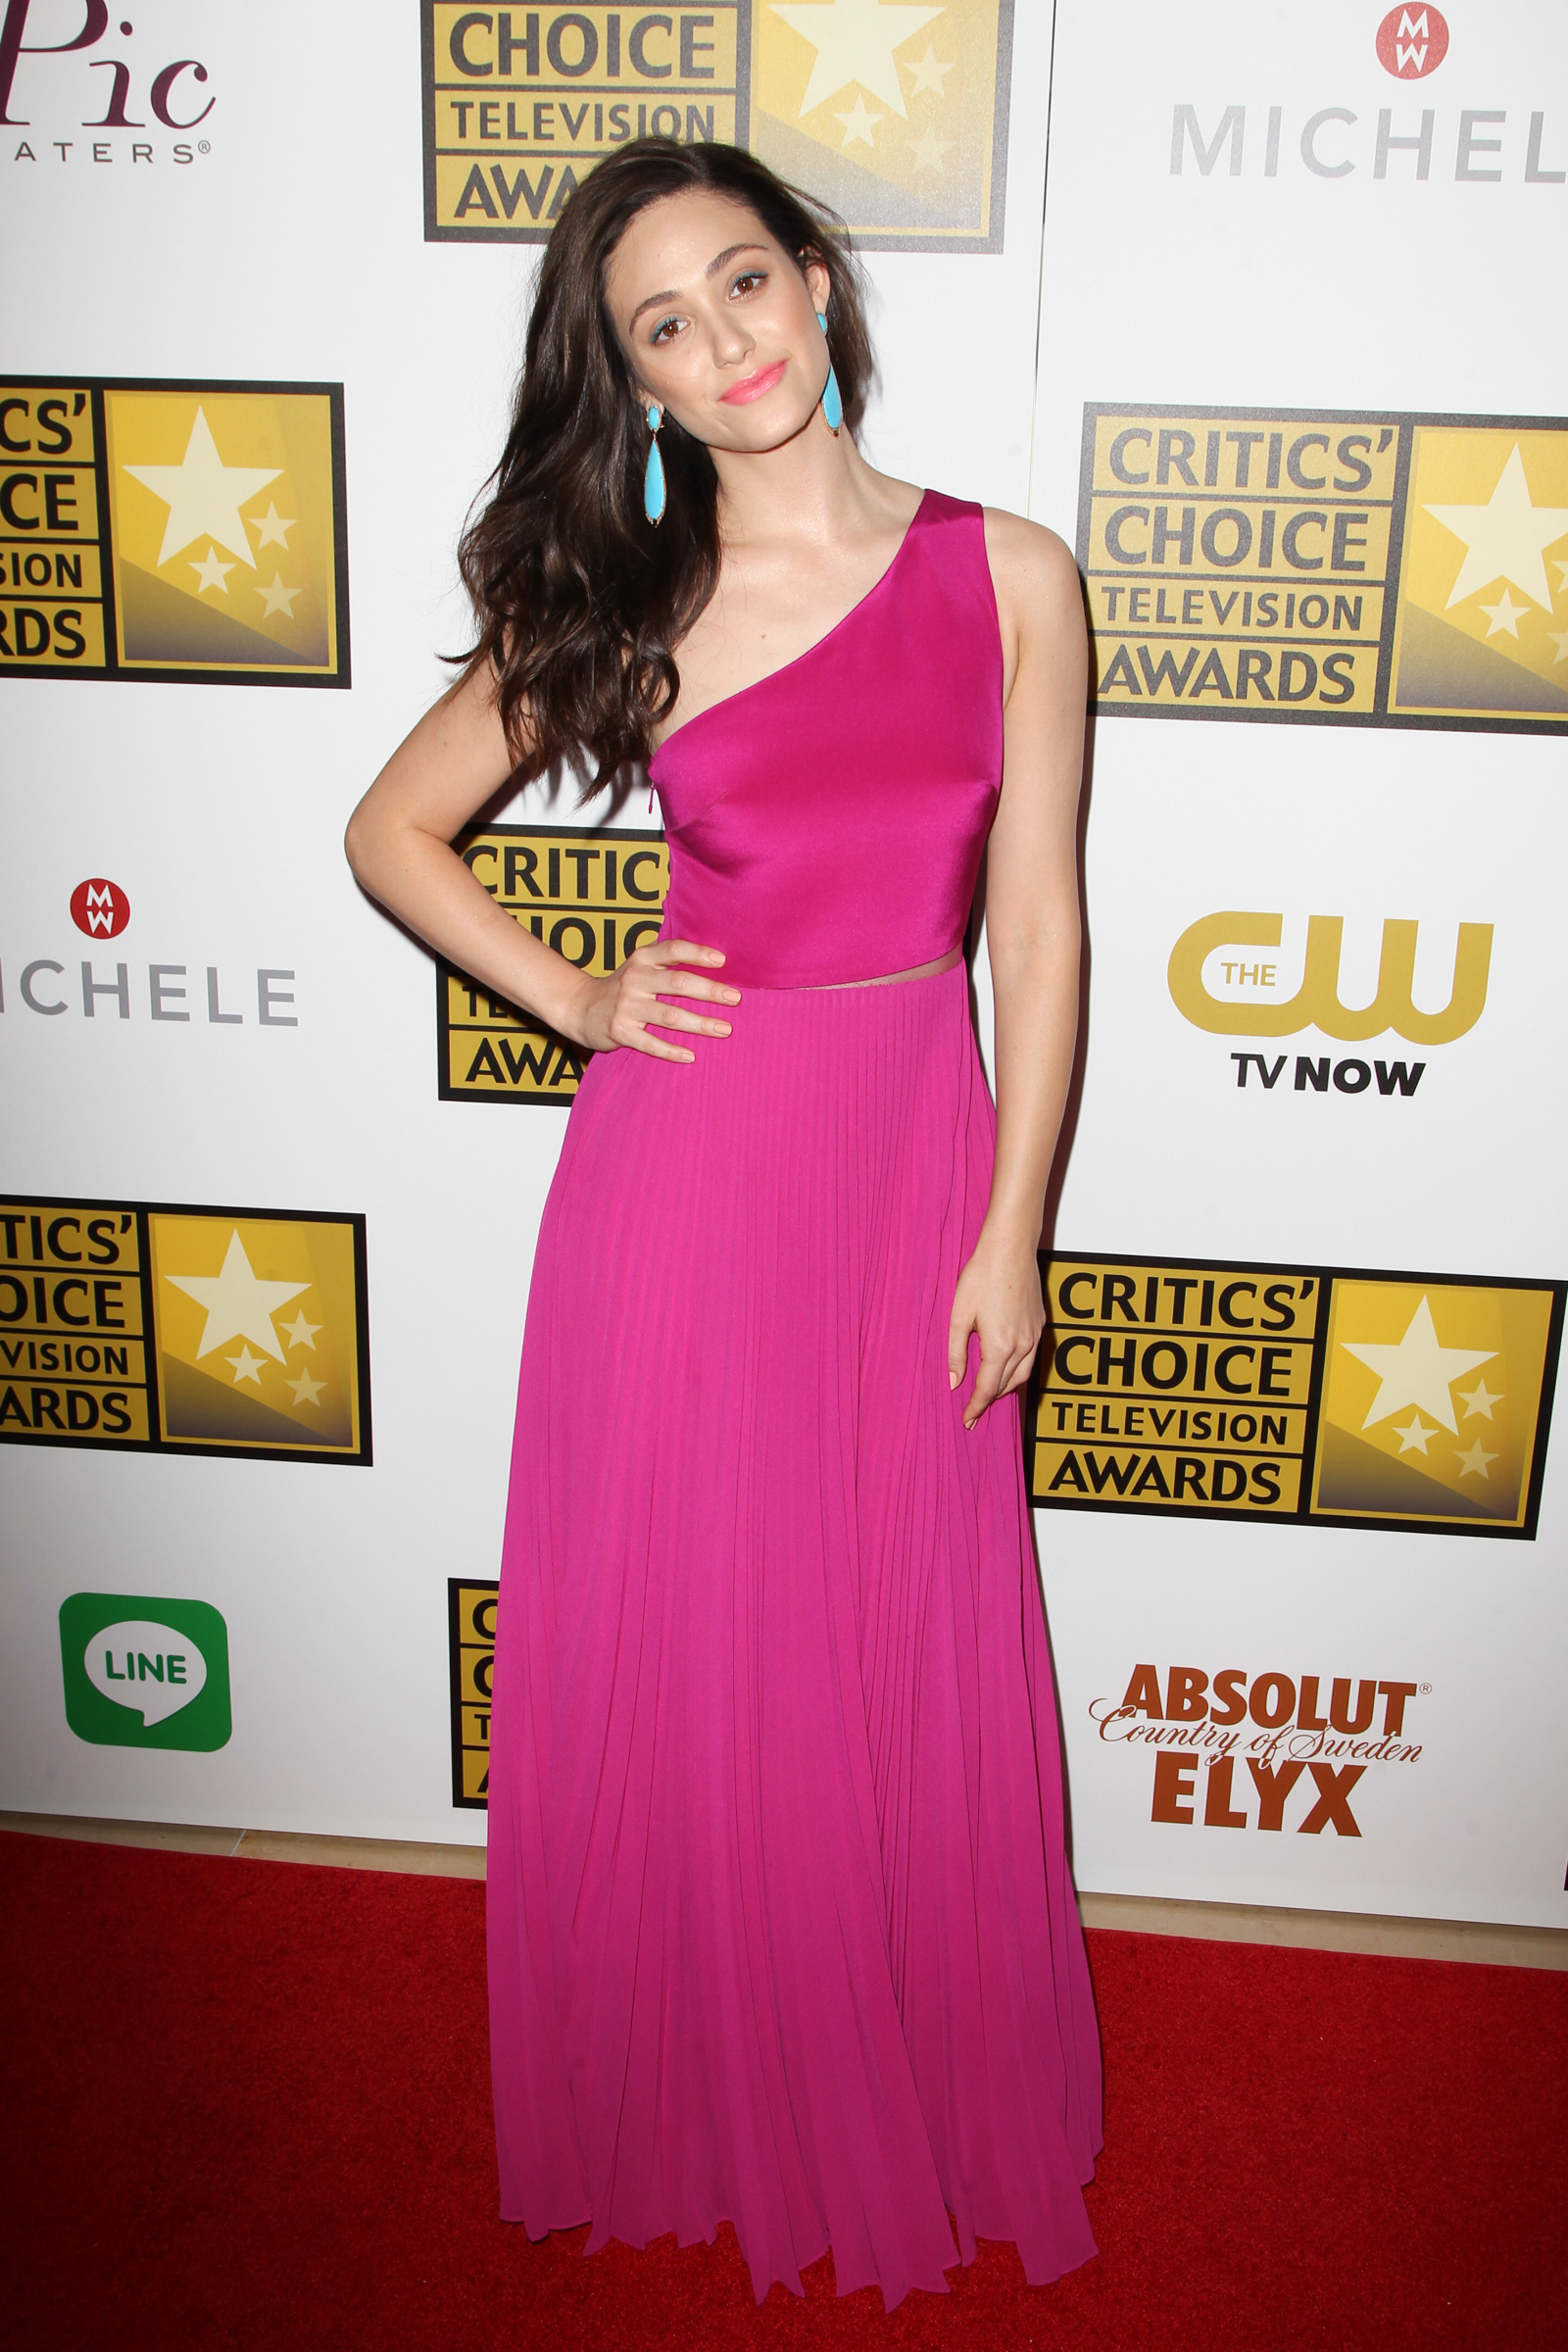 Emmy Rossum at the Critic's Choice Awards